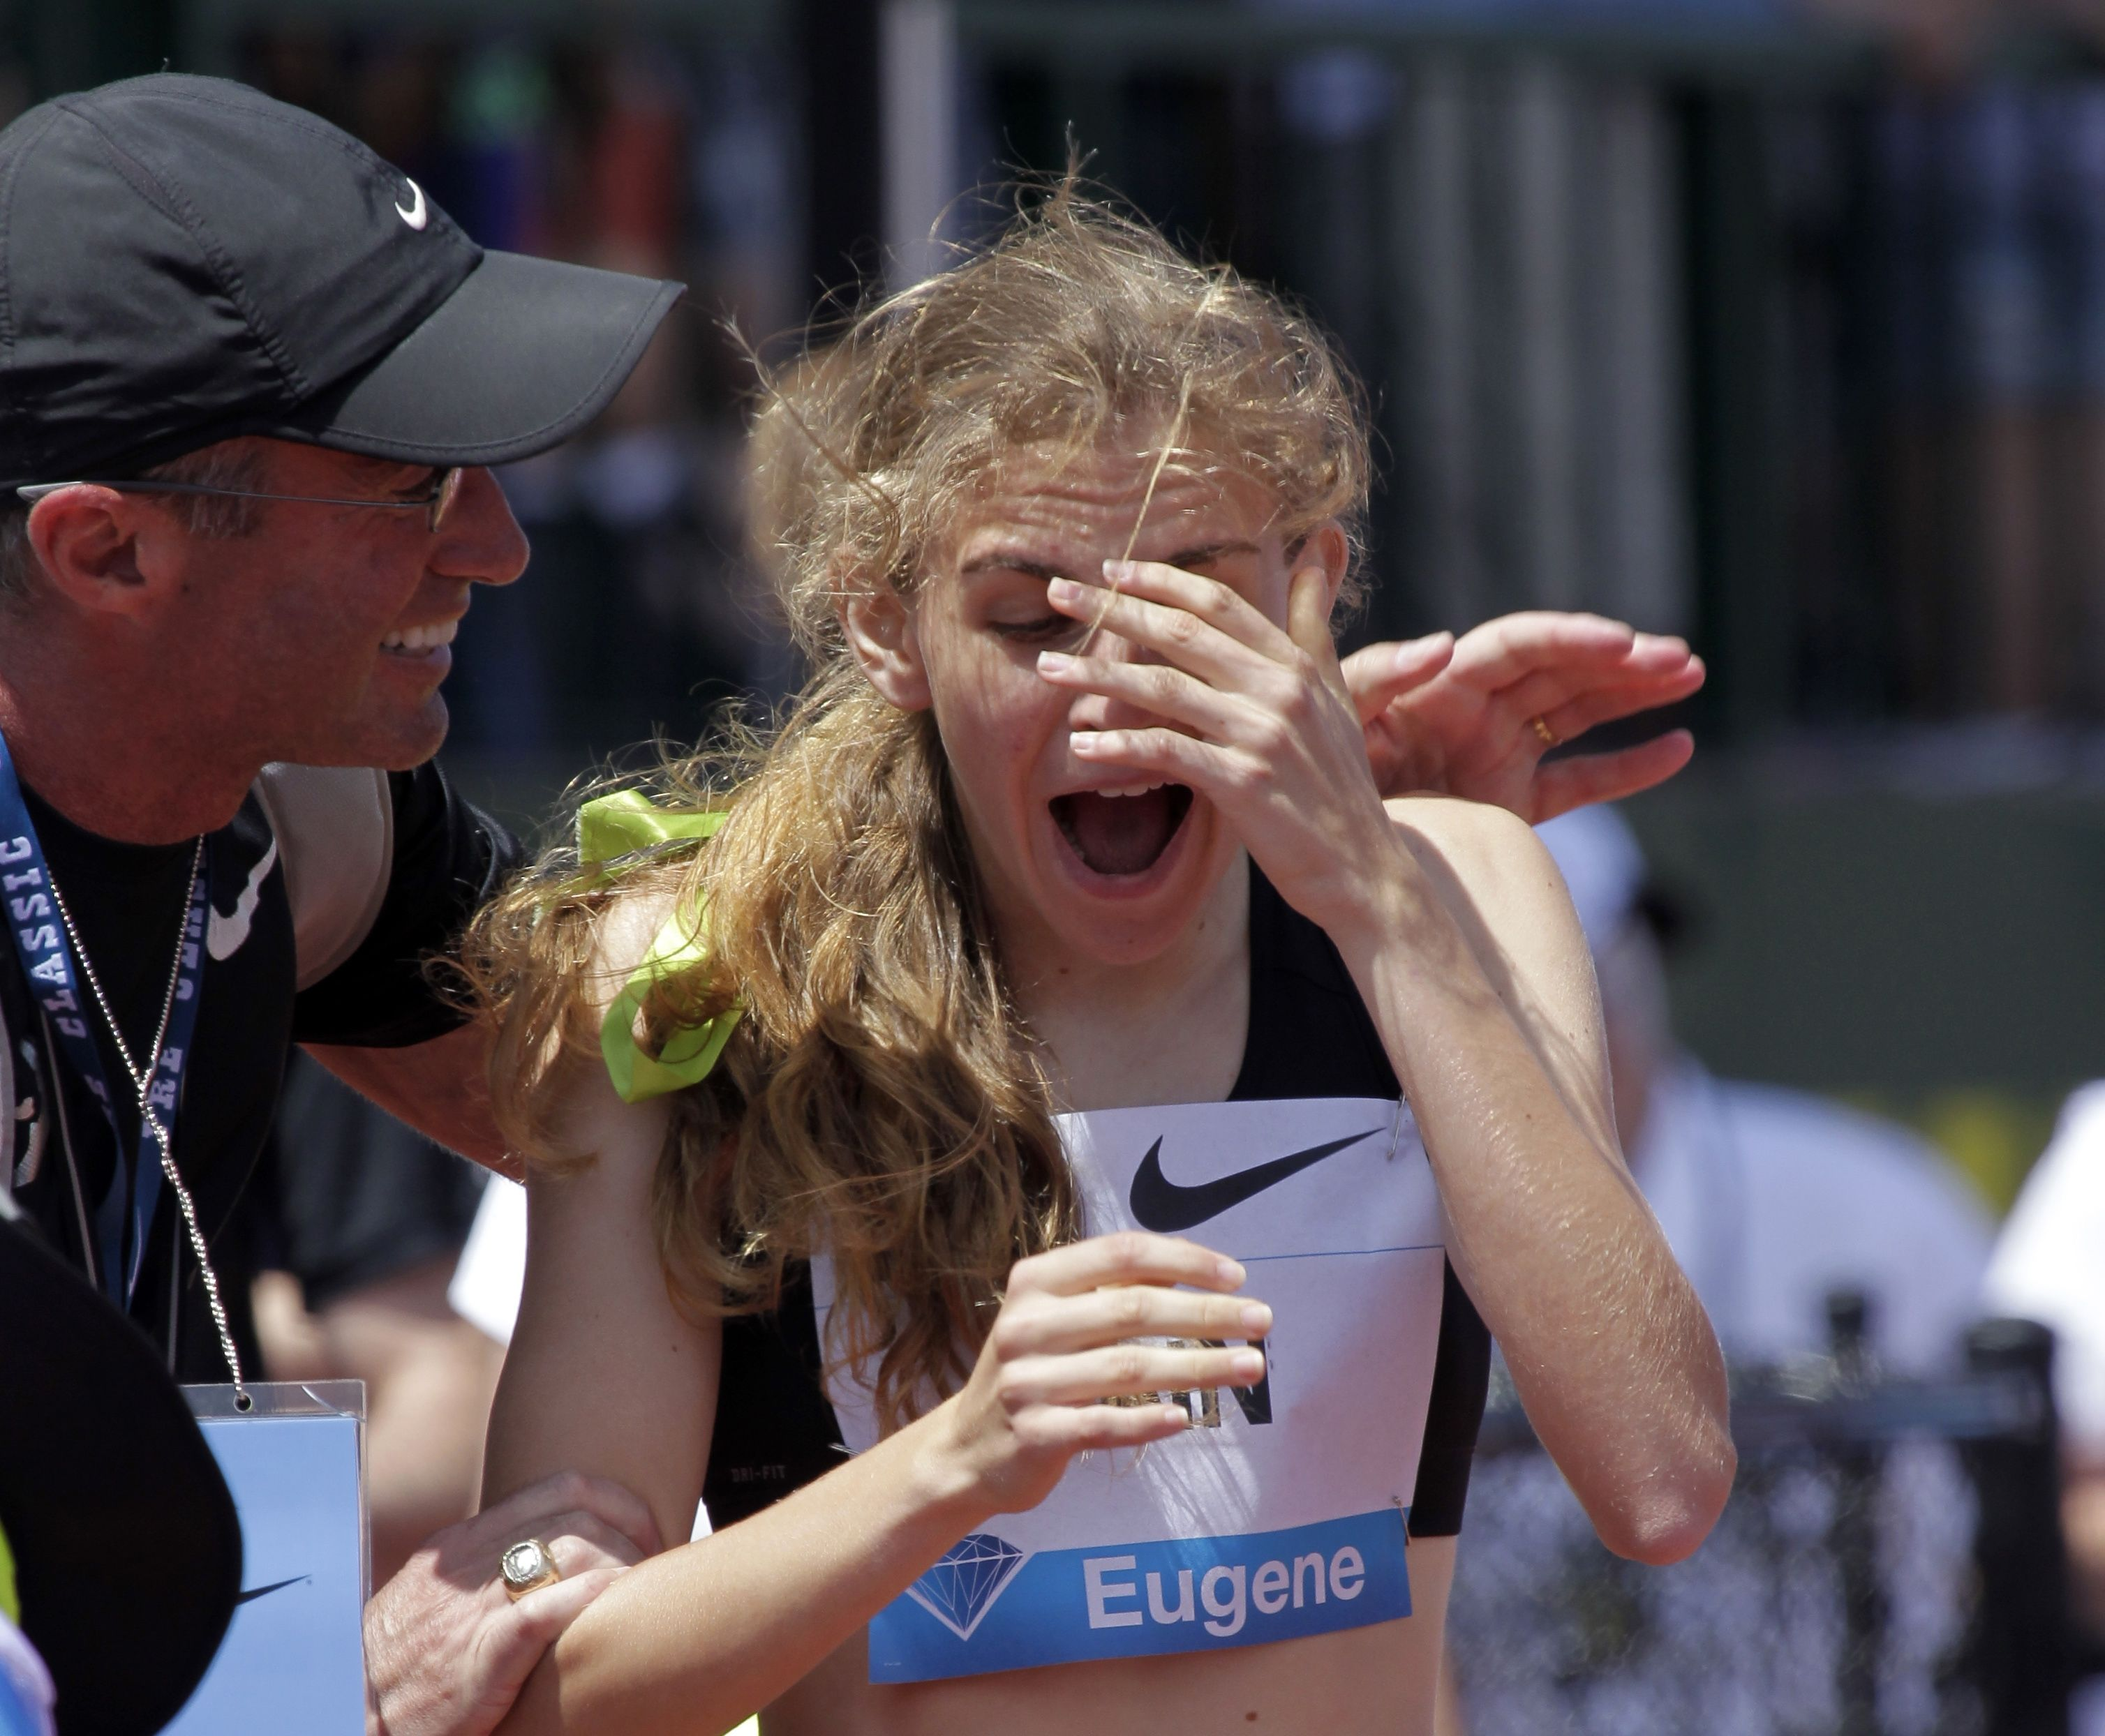 Mary Cain, Alberto Salazar Mary Cain, 17, right, reacts as coach Alberto Salazar tells her she has just broken the American high school 800-meter record during the Prefontaine Classic track and field meet in Eugene, OrePrefontaine Classic Athletics, Eugene, USA